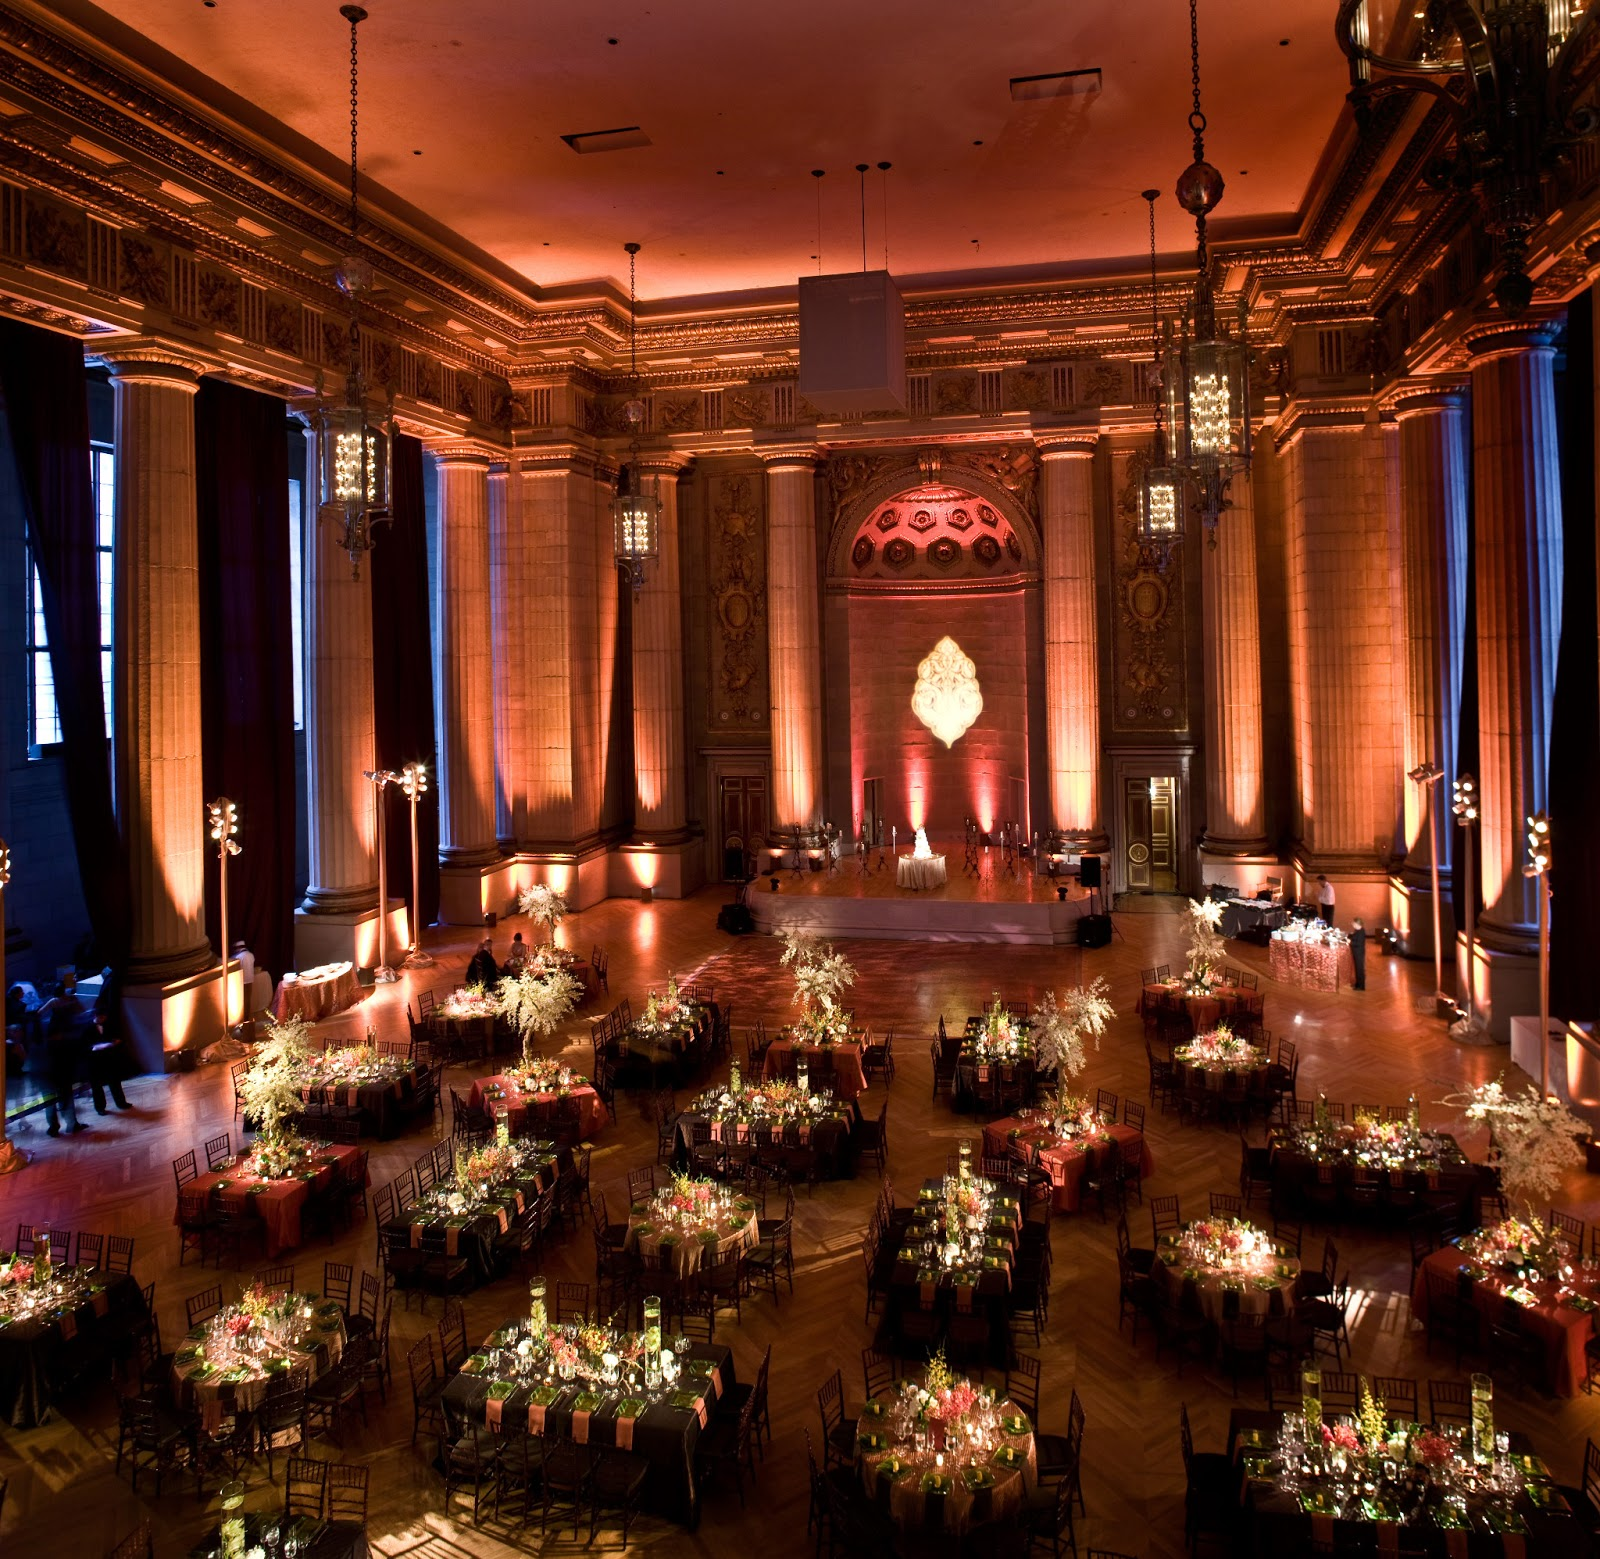 Art Places In Washington Dc: Bridal Bubbly: DC Wedding Venues {Grand And Glamorous}